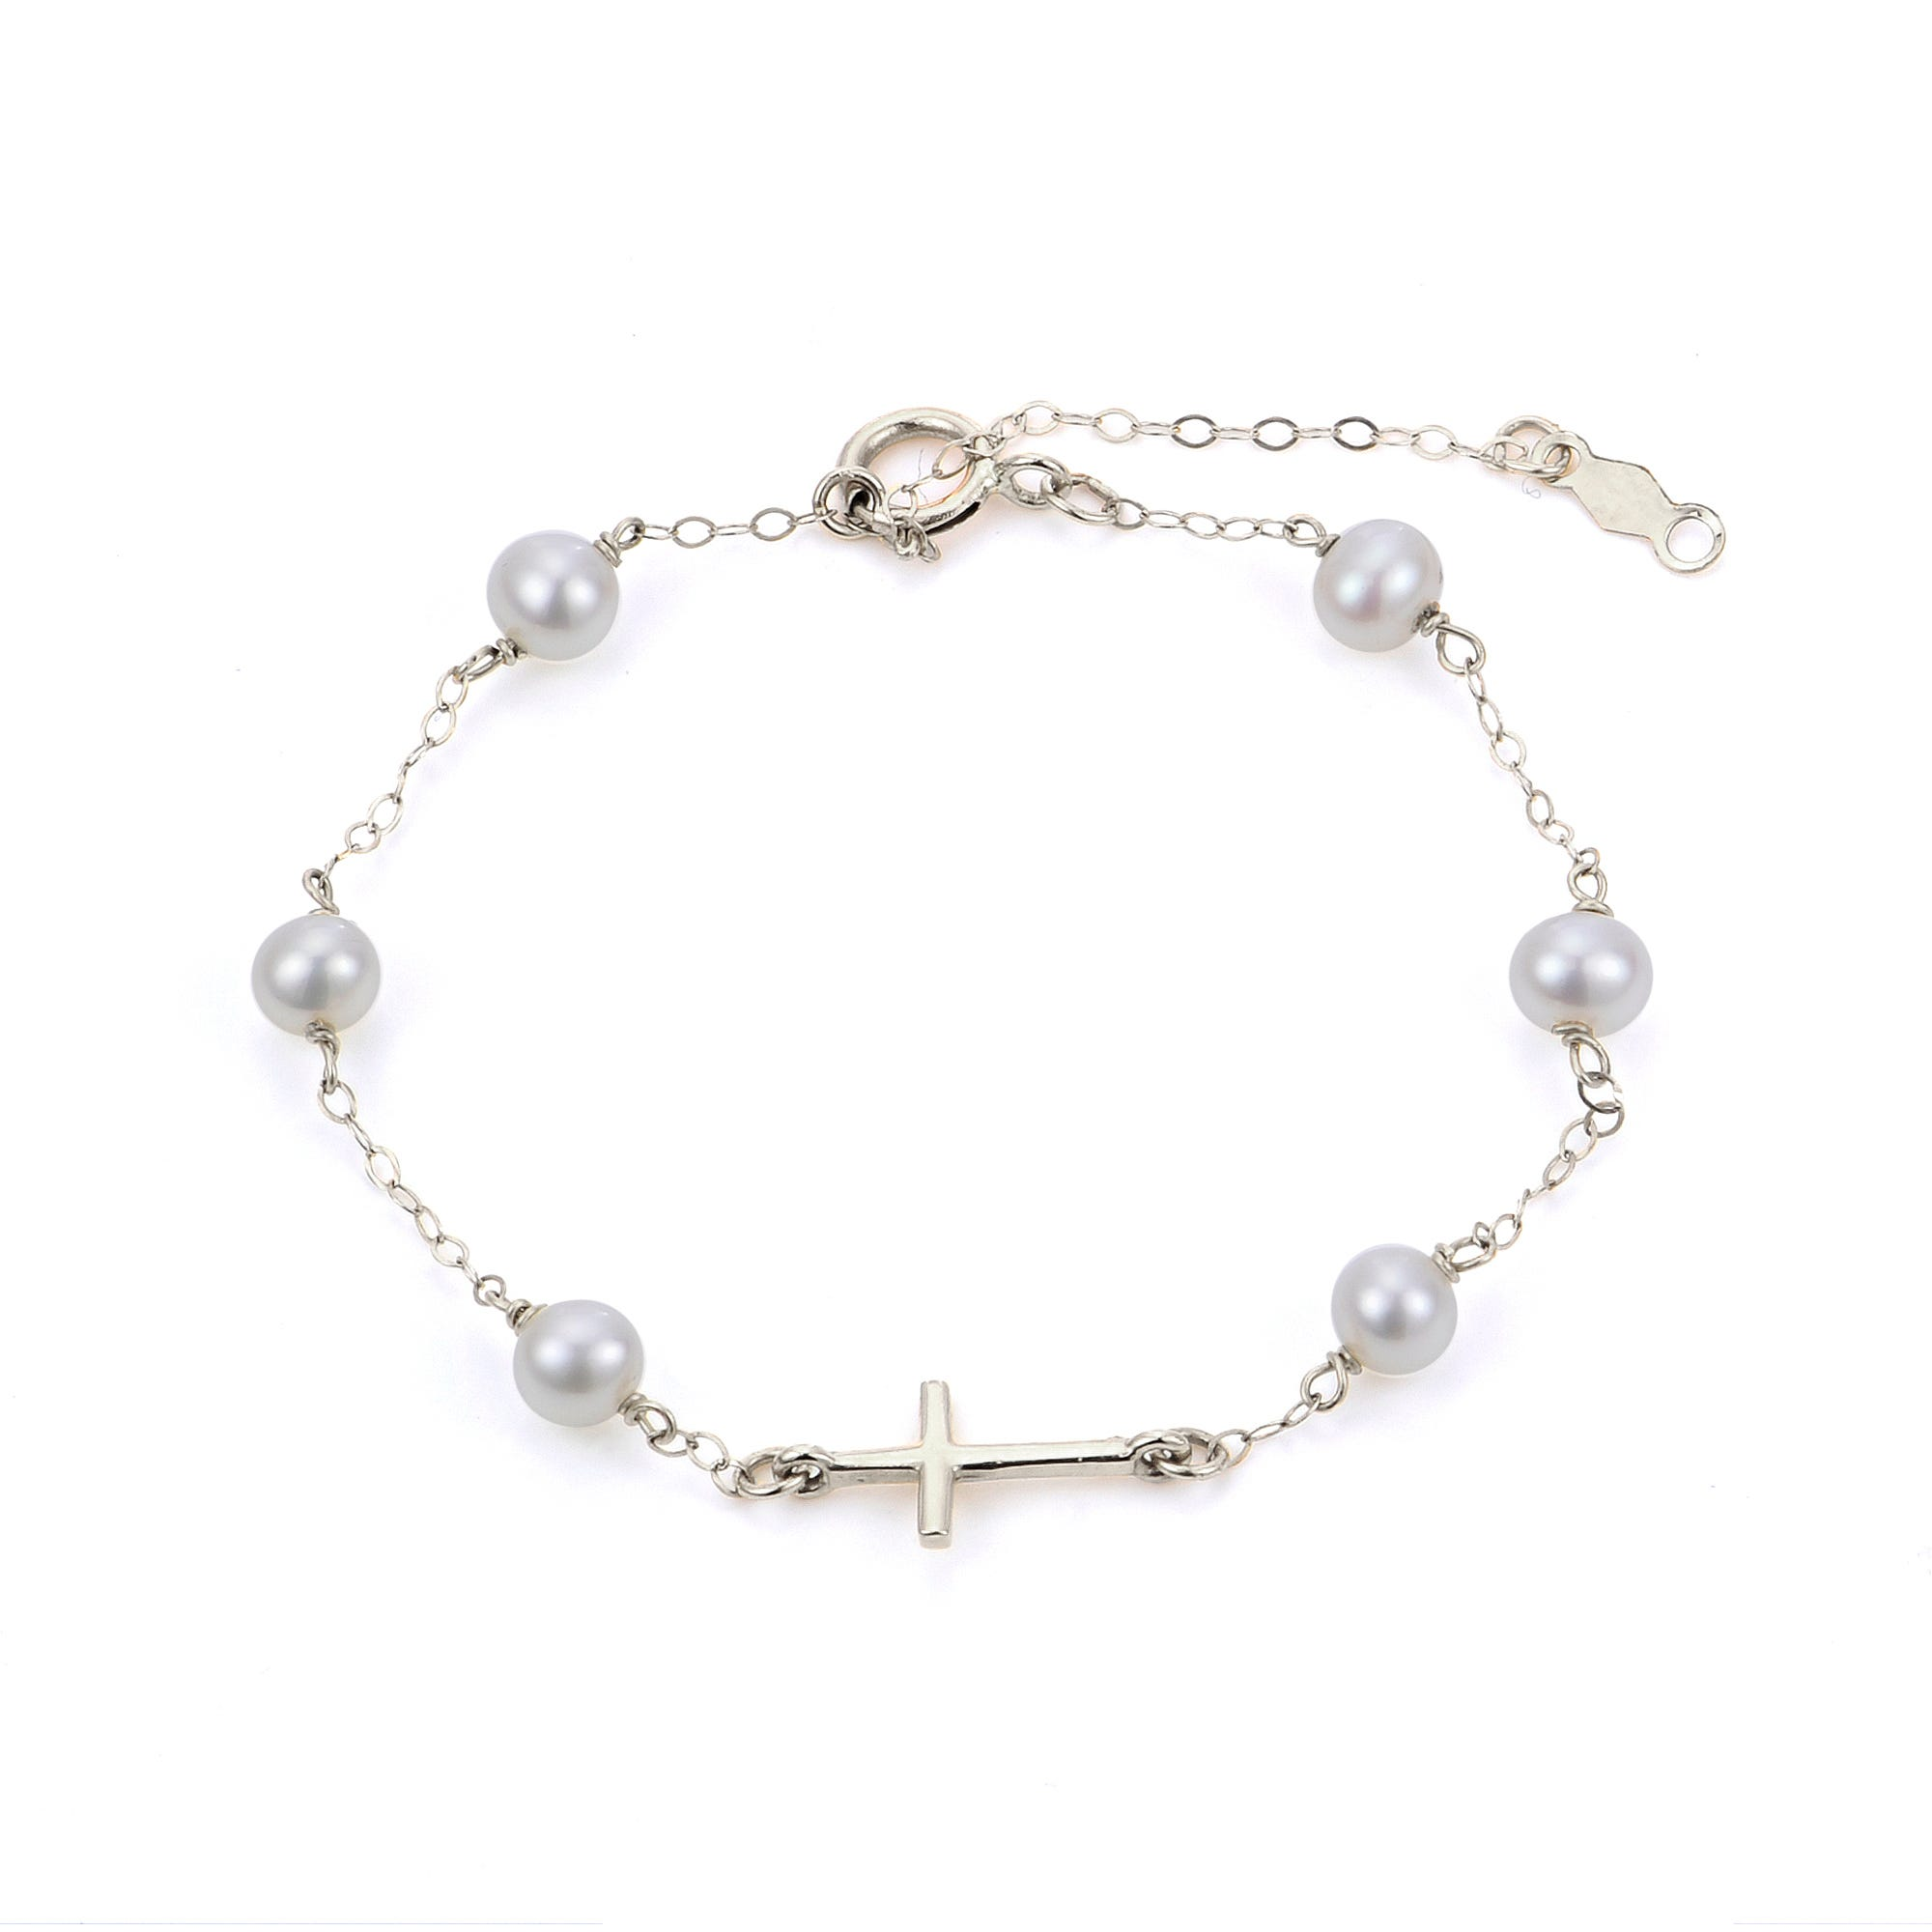 Freshwater Pearl Children's Cross Bracelet in Sterling Silver